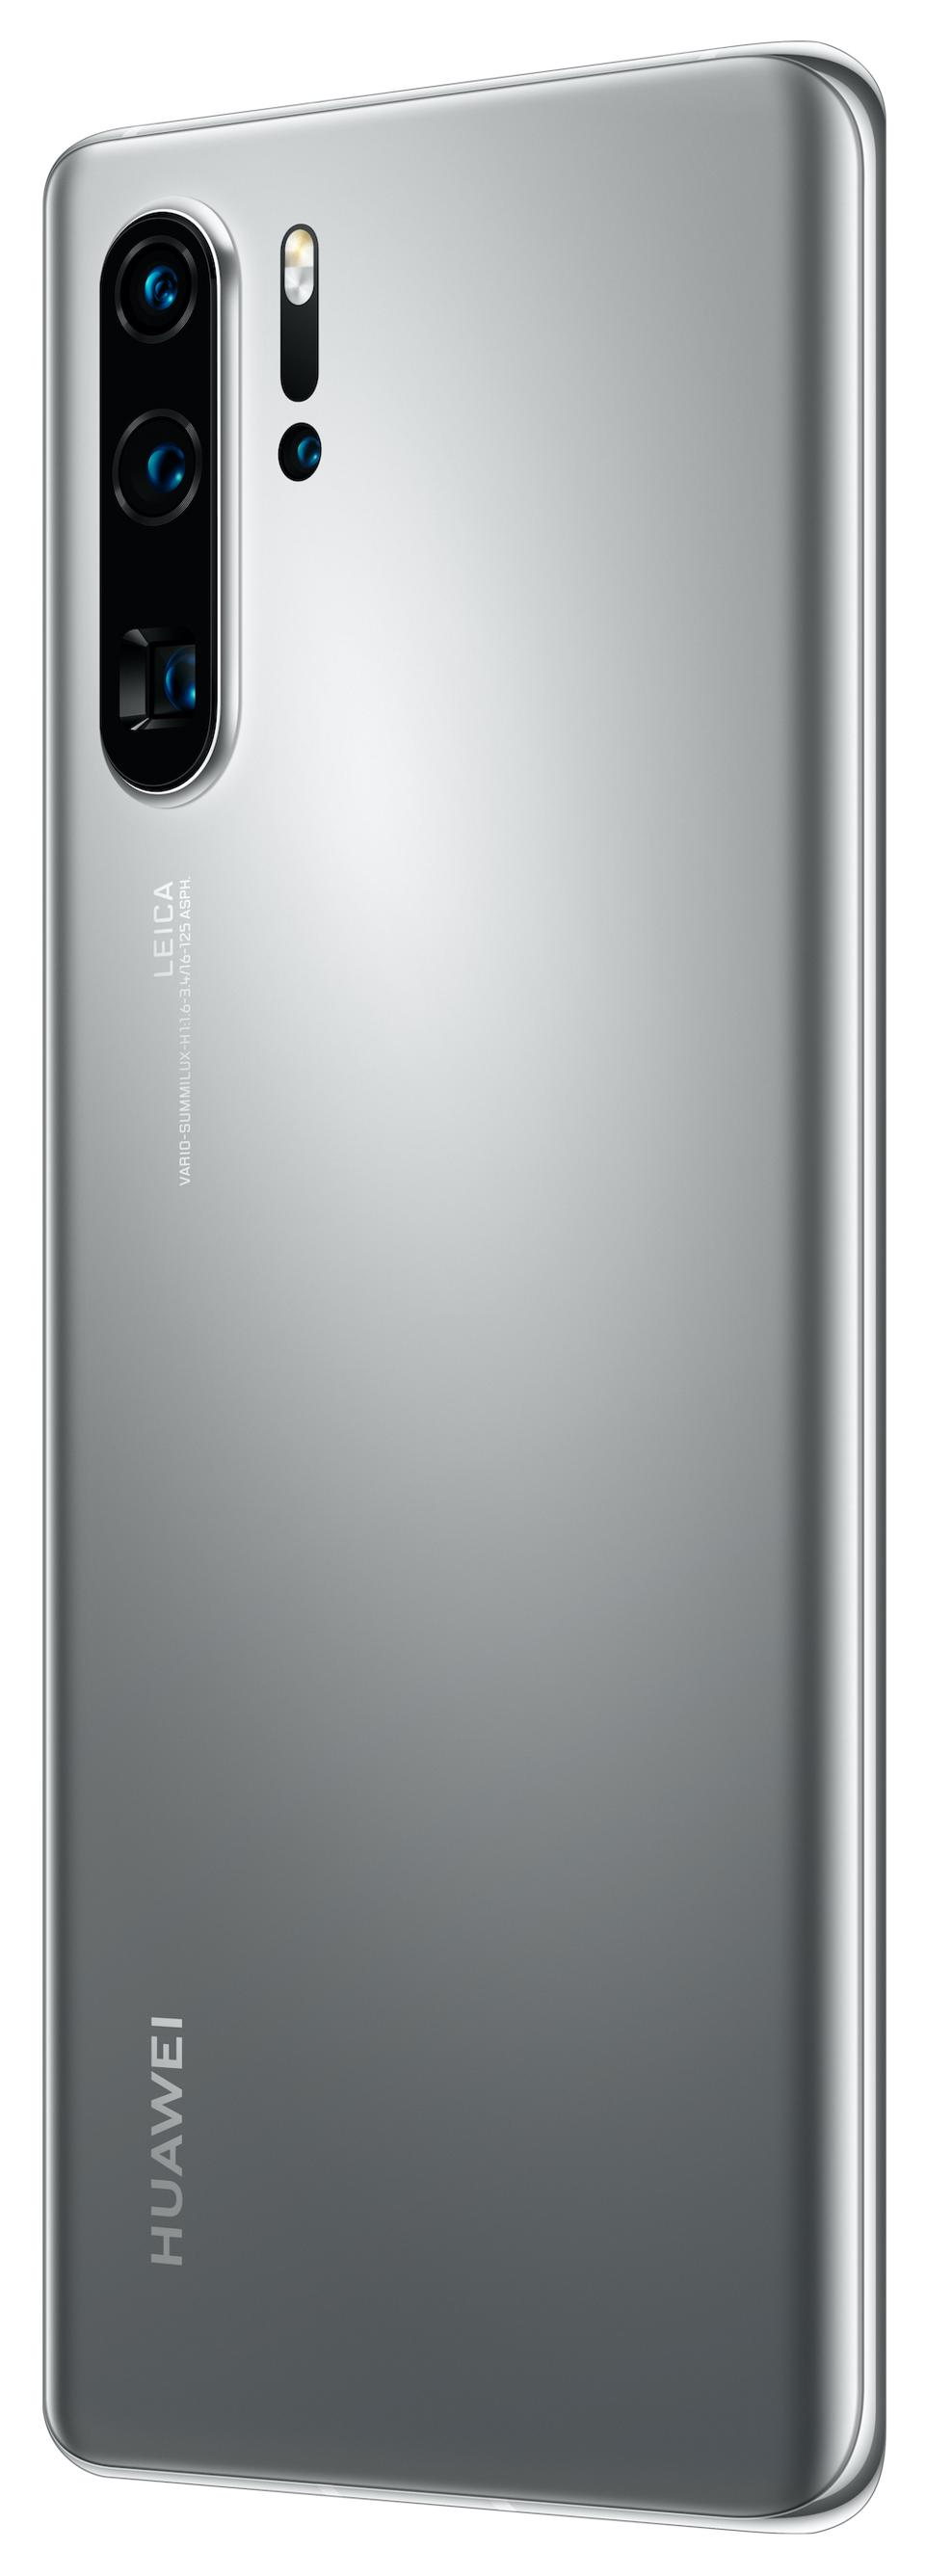 HUAWEI P30 Pro NEW EDITION Silver frost finish